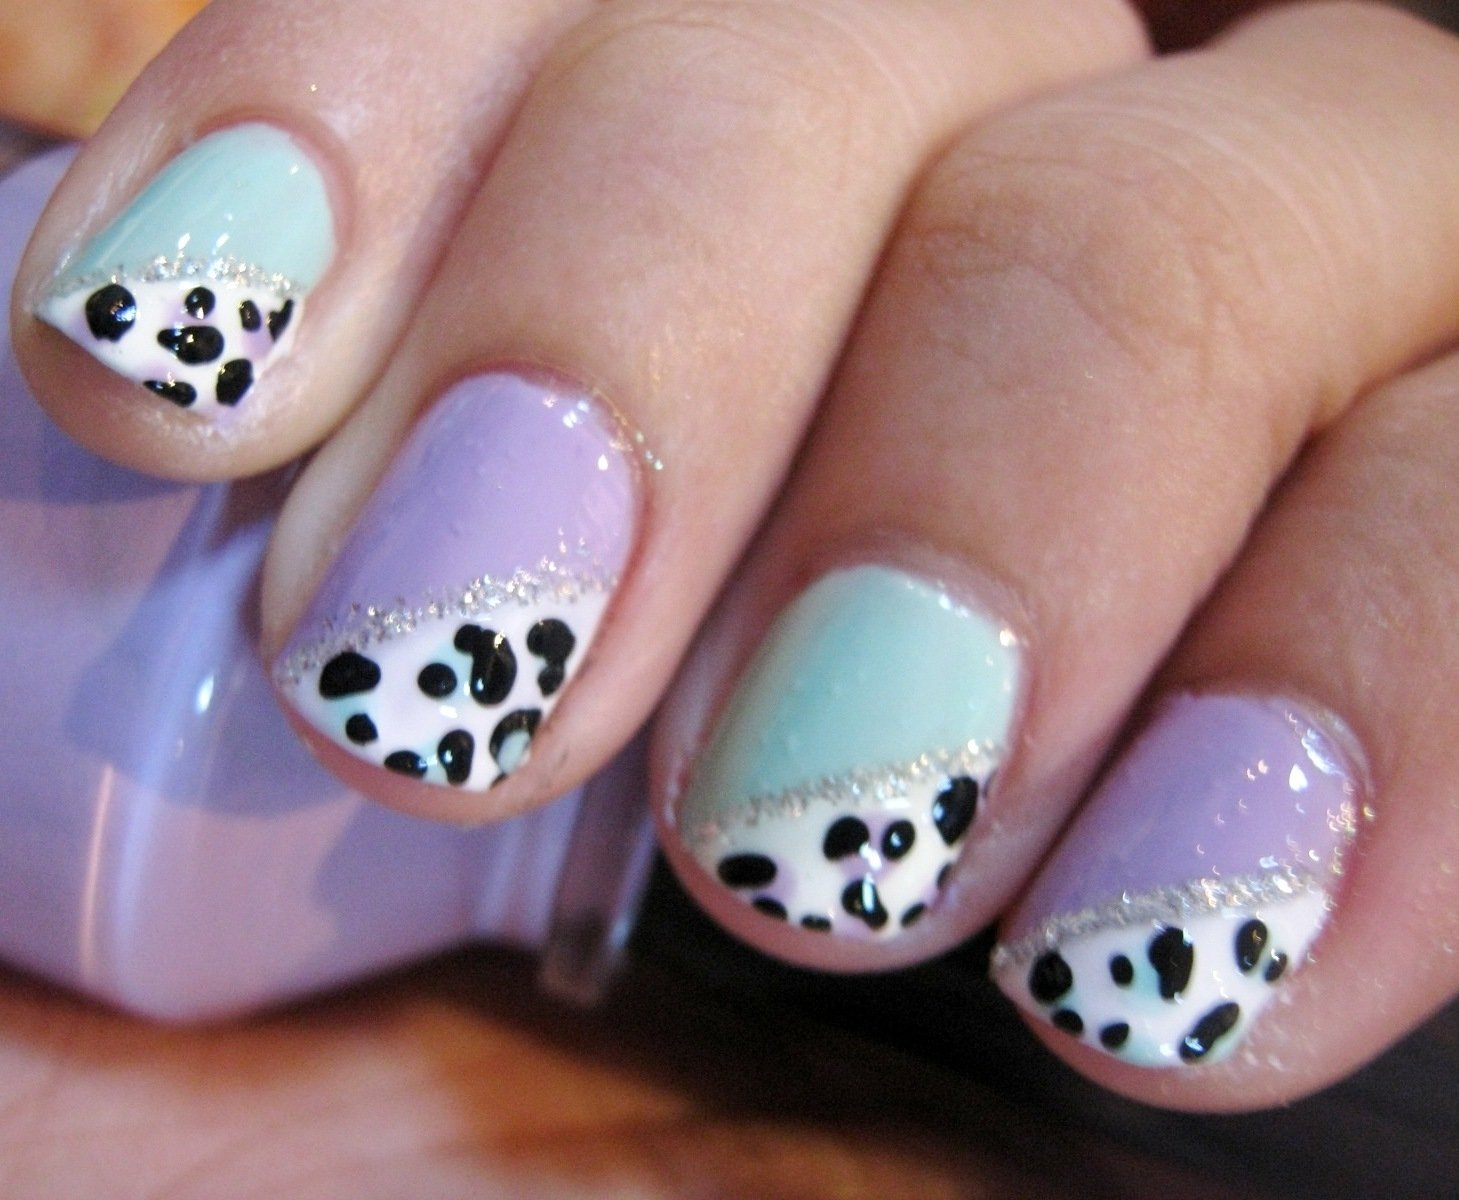 10 Attractive Easy Nail Ideas For Short Nails cute nail polish ideas for short nails how you can do it at home 2021